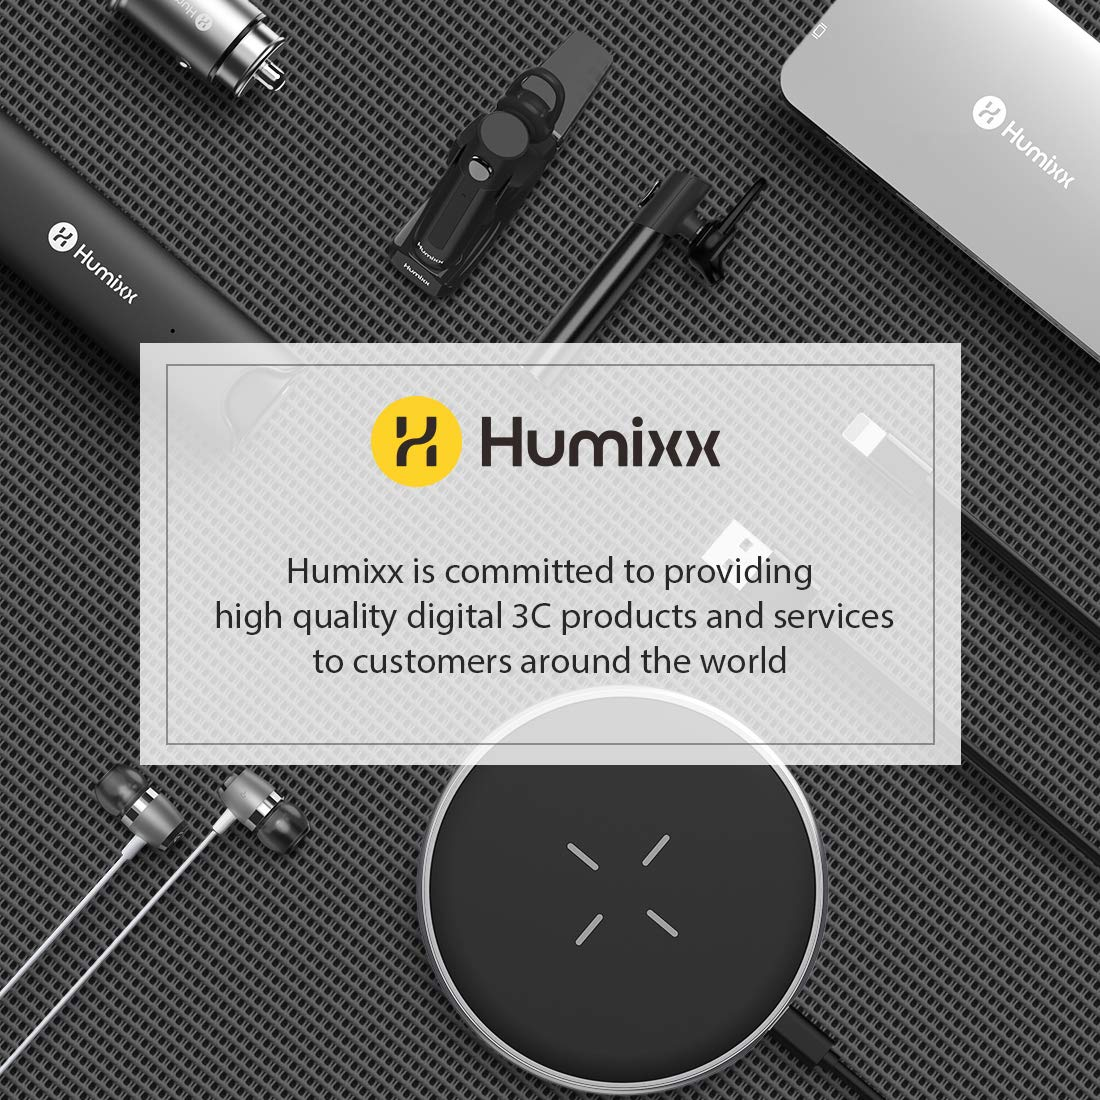 Humixx Selfie Stick, Buletooth 4-in-1 Extendable Selfie Stick Tripod 360° Rotation, Rechargeable Wireless Remote Shutter Compatible with iPhone XR/XS Max, Samsung S10+, Huawei P30, Go Pro and Cameras by Humixx (Image #8)